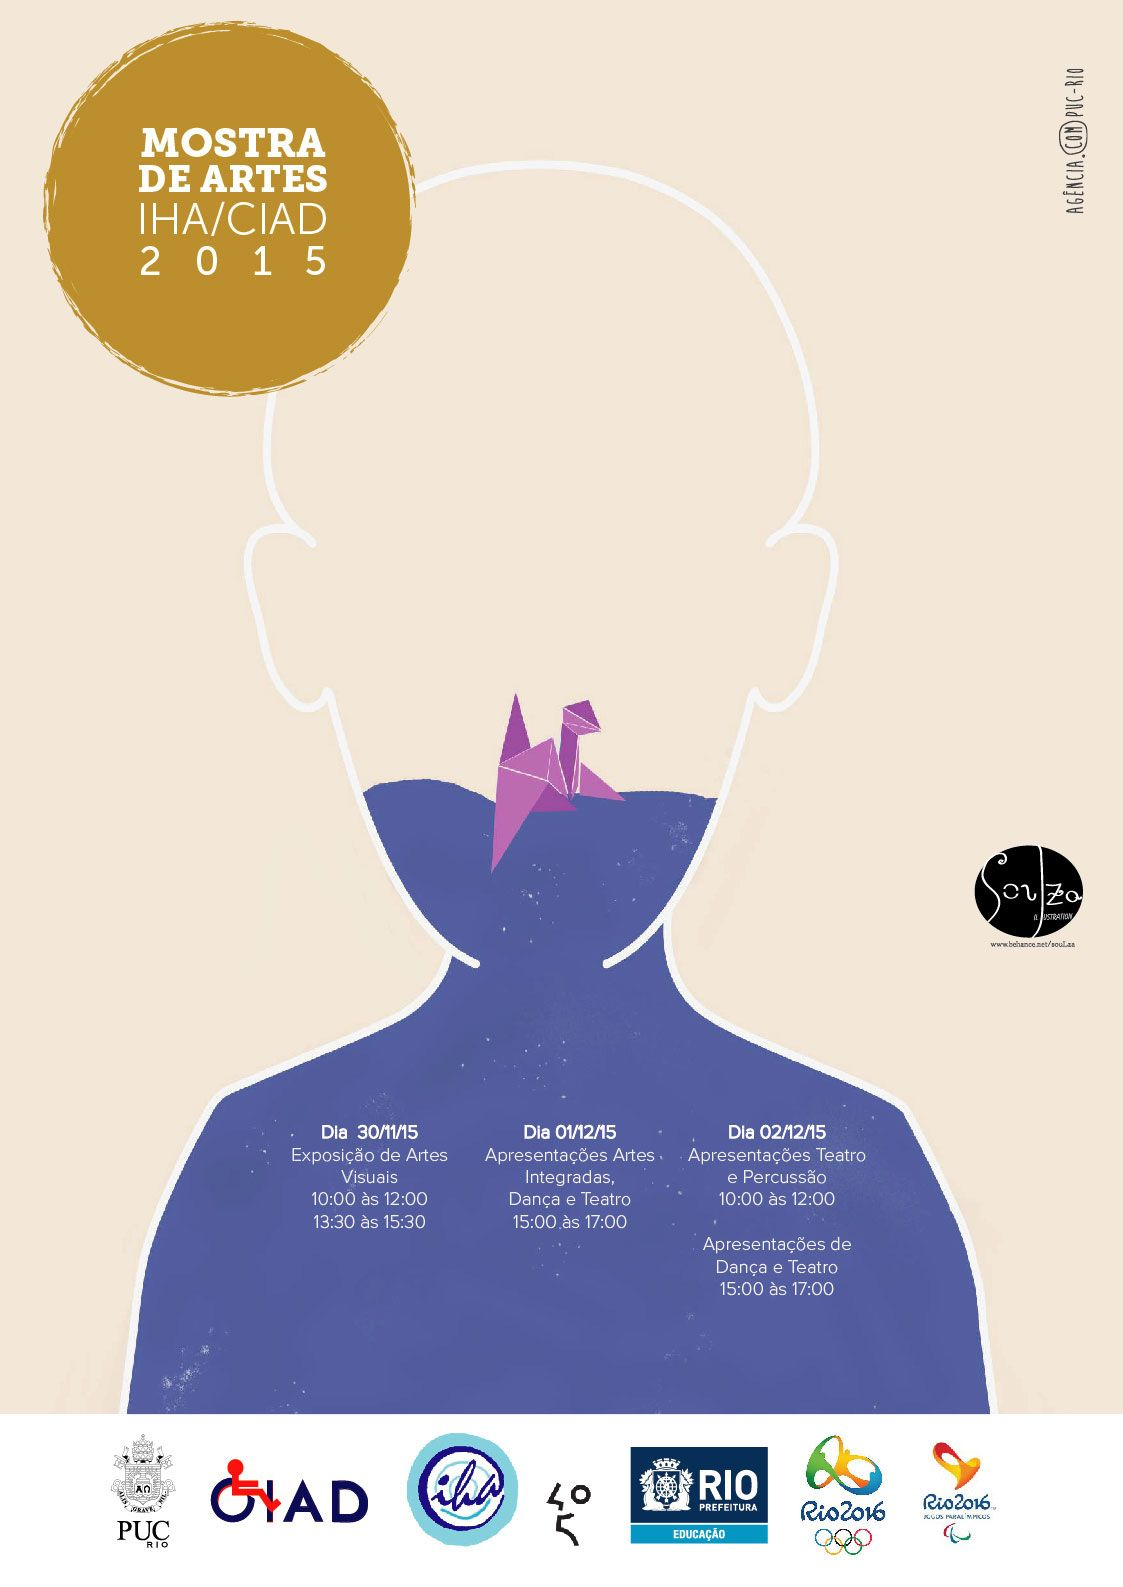 """Poster for IHA/CIAD's """"Mostra de artes"""" 2015 on Behance"""